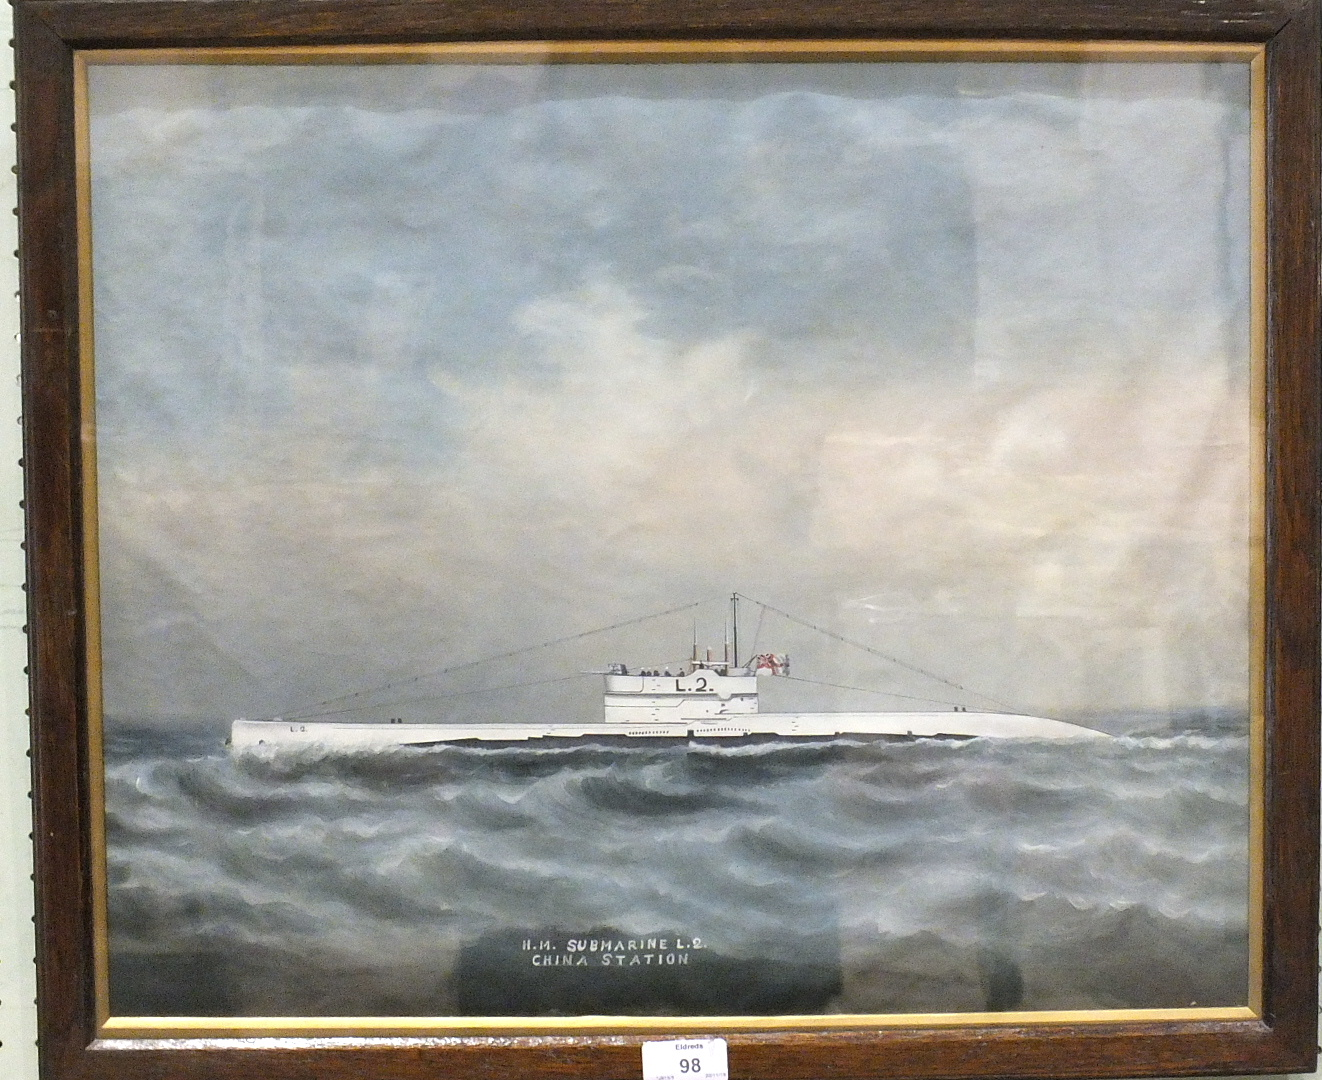 Lot 98 - British, early-20th century H M SUBMARINE L2, CHINA STATION Unsigned gouache, 42.5 x 52cm.